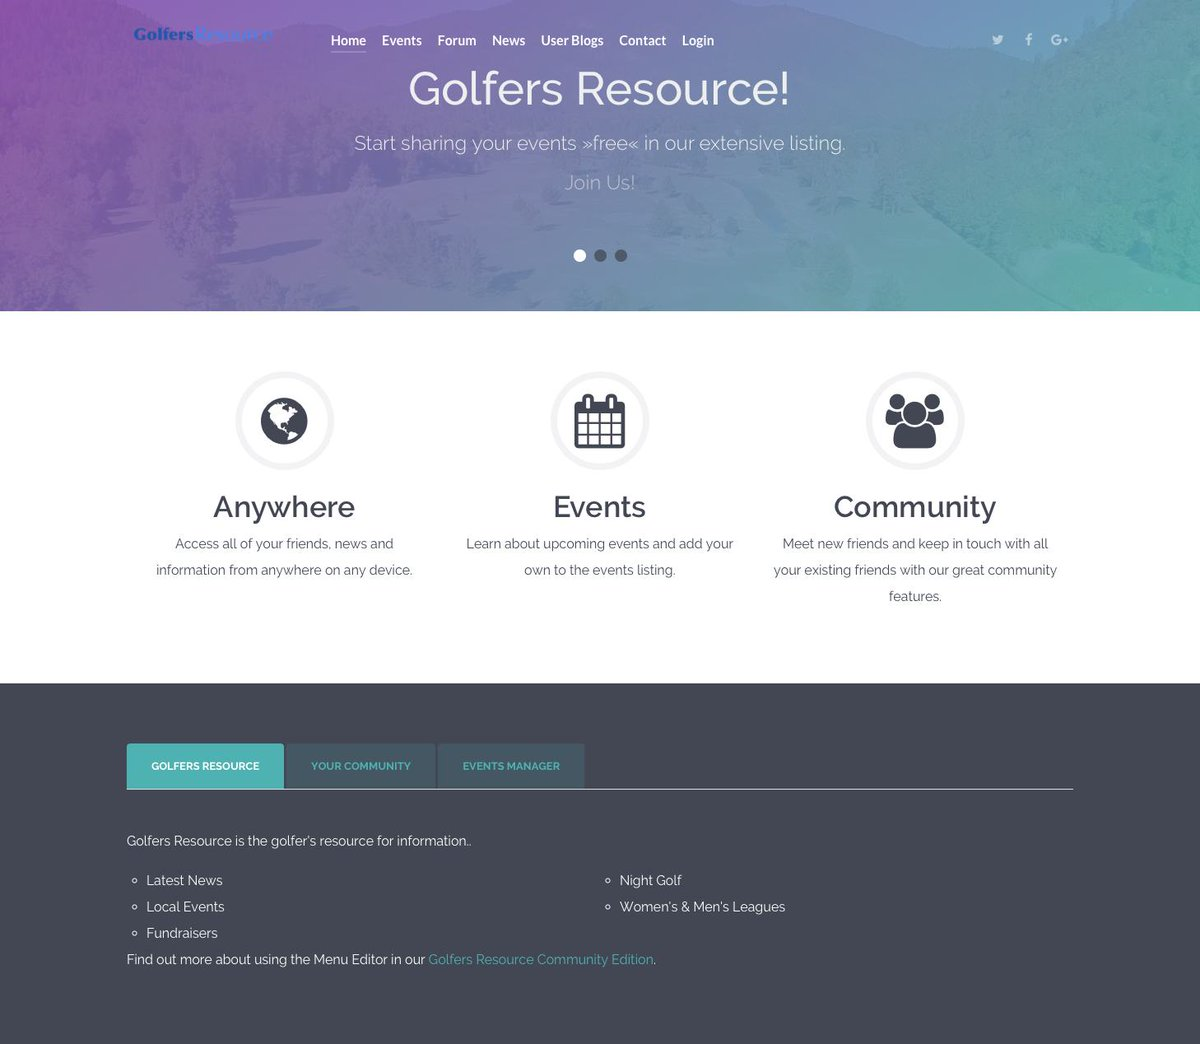 Golfers Resource relaunched with lots of new features.  Sick of Facebook and all the noise and want a more golfing focused group?  This is the place.  Check it out:  https://t.co/hejWXDtPmT